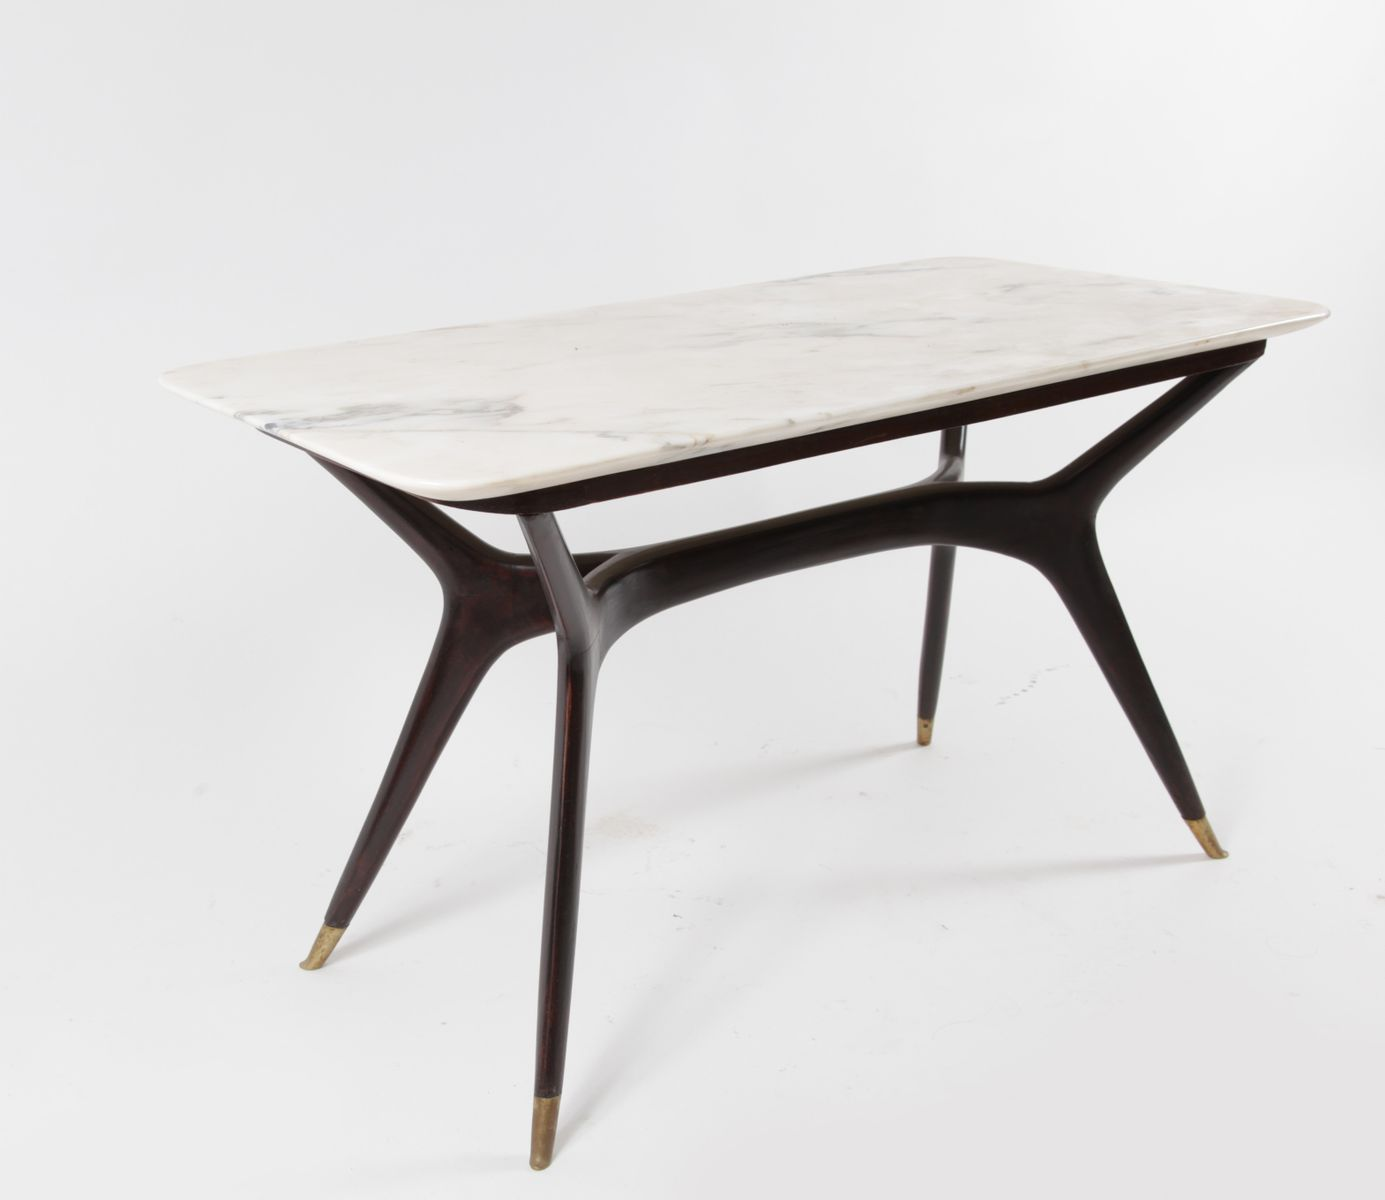 Italian Coffee Tables Marble Italian Marble Coffee Table By Ico Parisi 1950s For Sale At Pamono